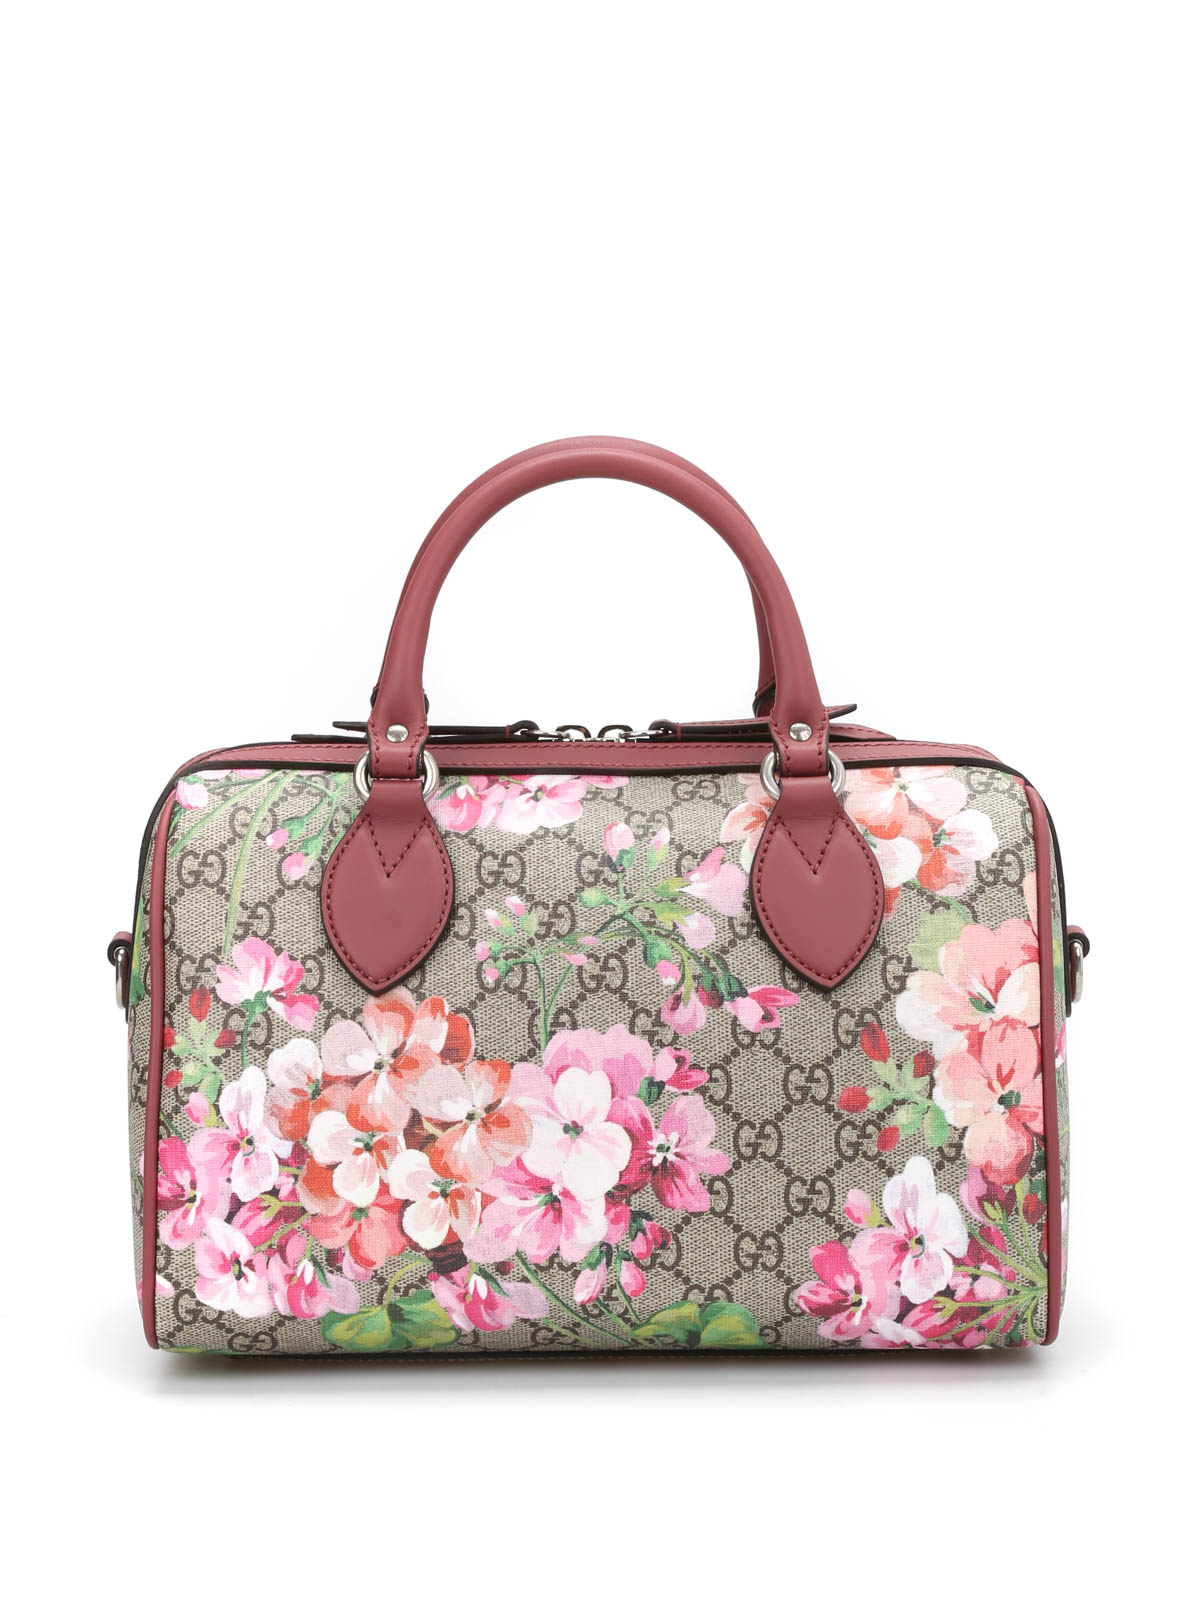 46fee5946cd1 Gucci - Blooms GG Supreme top handle bag - bowling bags - 409529 ...